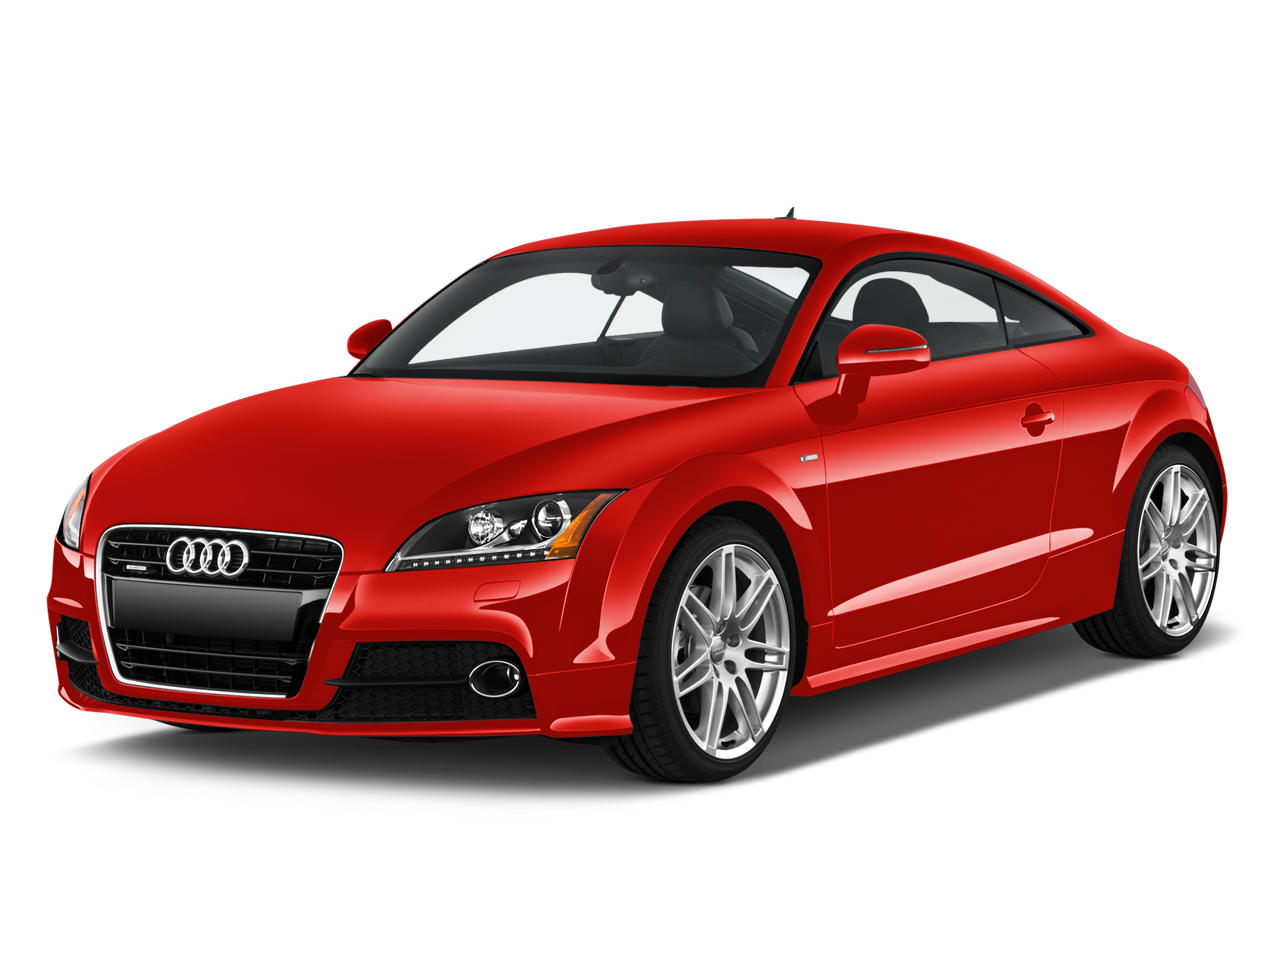 Red Audi Car Front Look